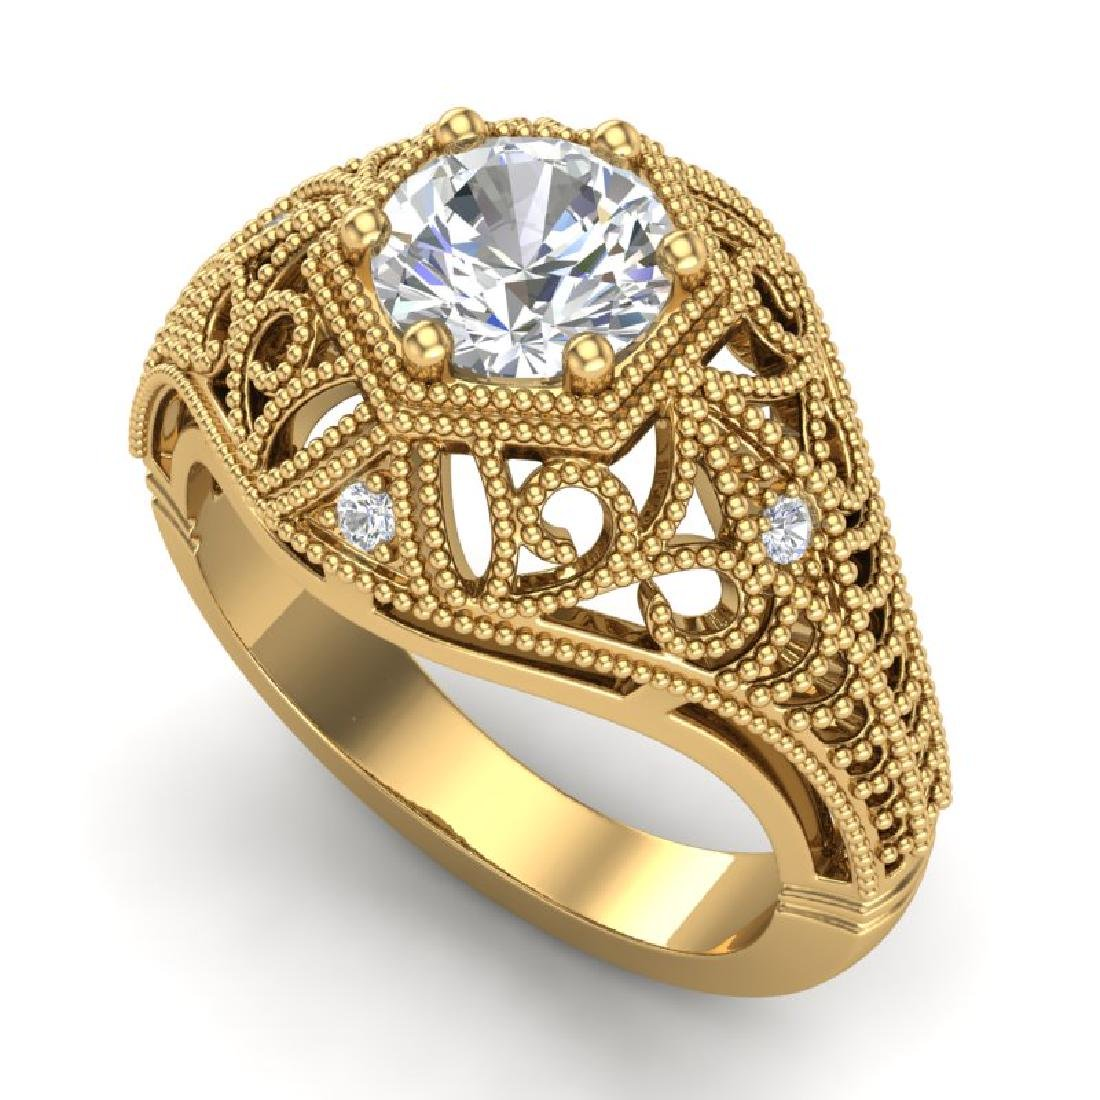 1.07 CTW VS/SI Diamond Solitaire Art Deco Ring 18K